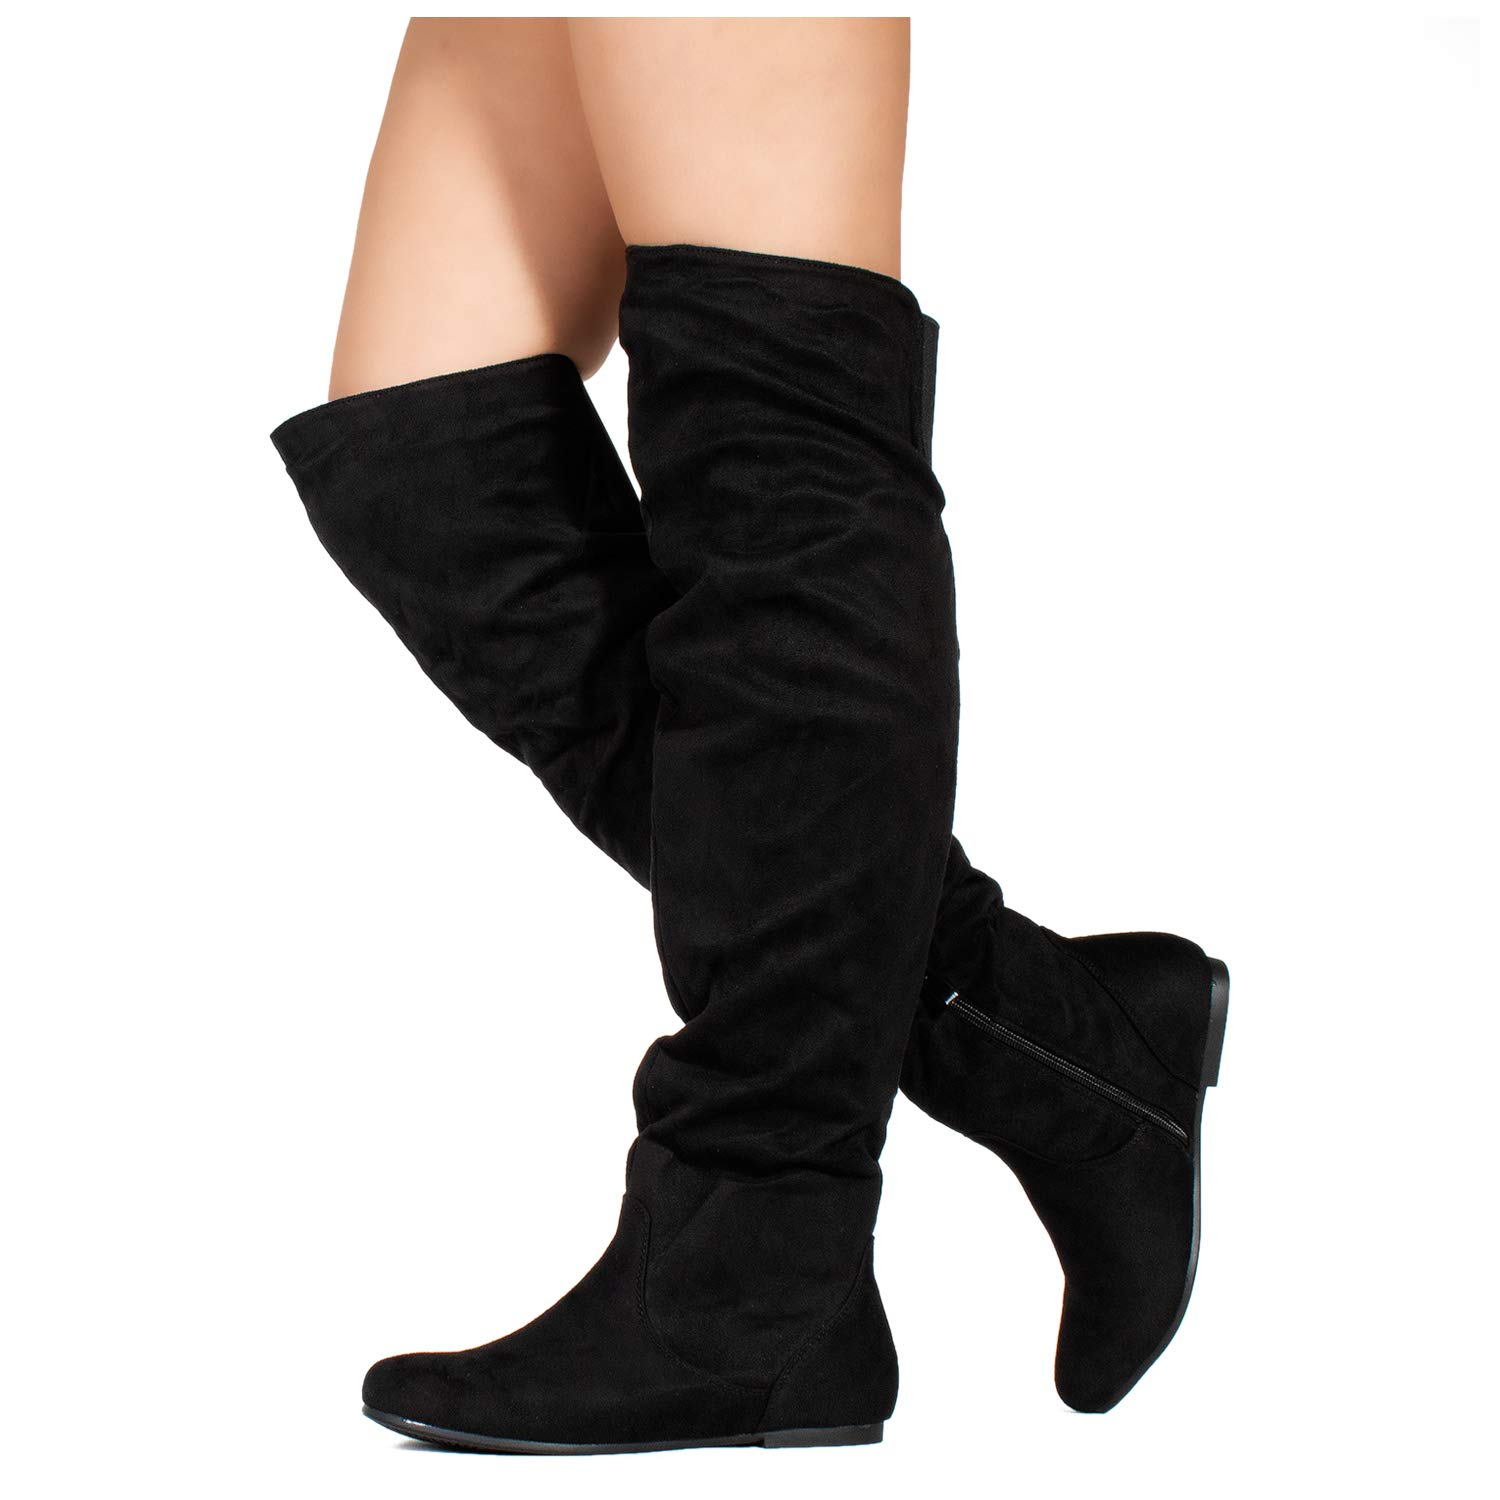 bfc7c7d78 RF ROOM OF FASHION Women's Stretchy Over The Knee Slouchy Boots product  image